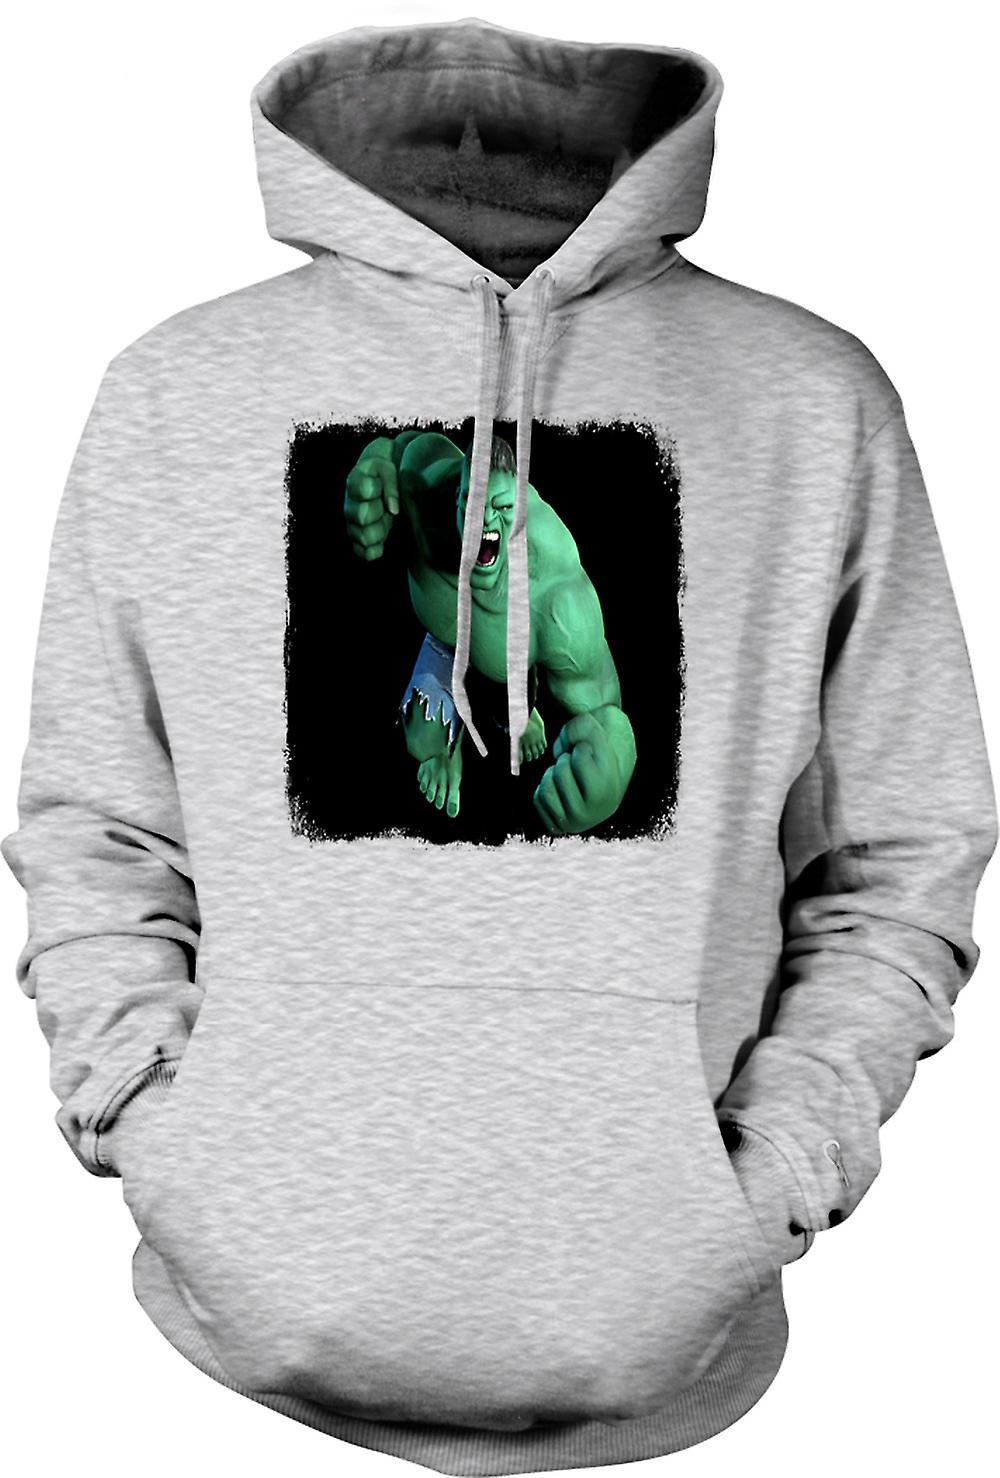 Mens Hoodie - Incredible Hulk - vuist